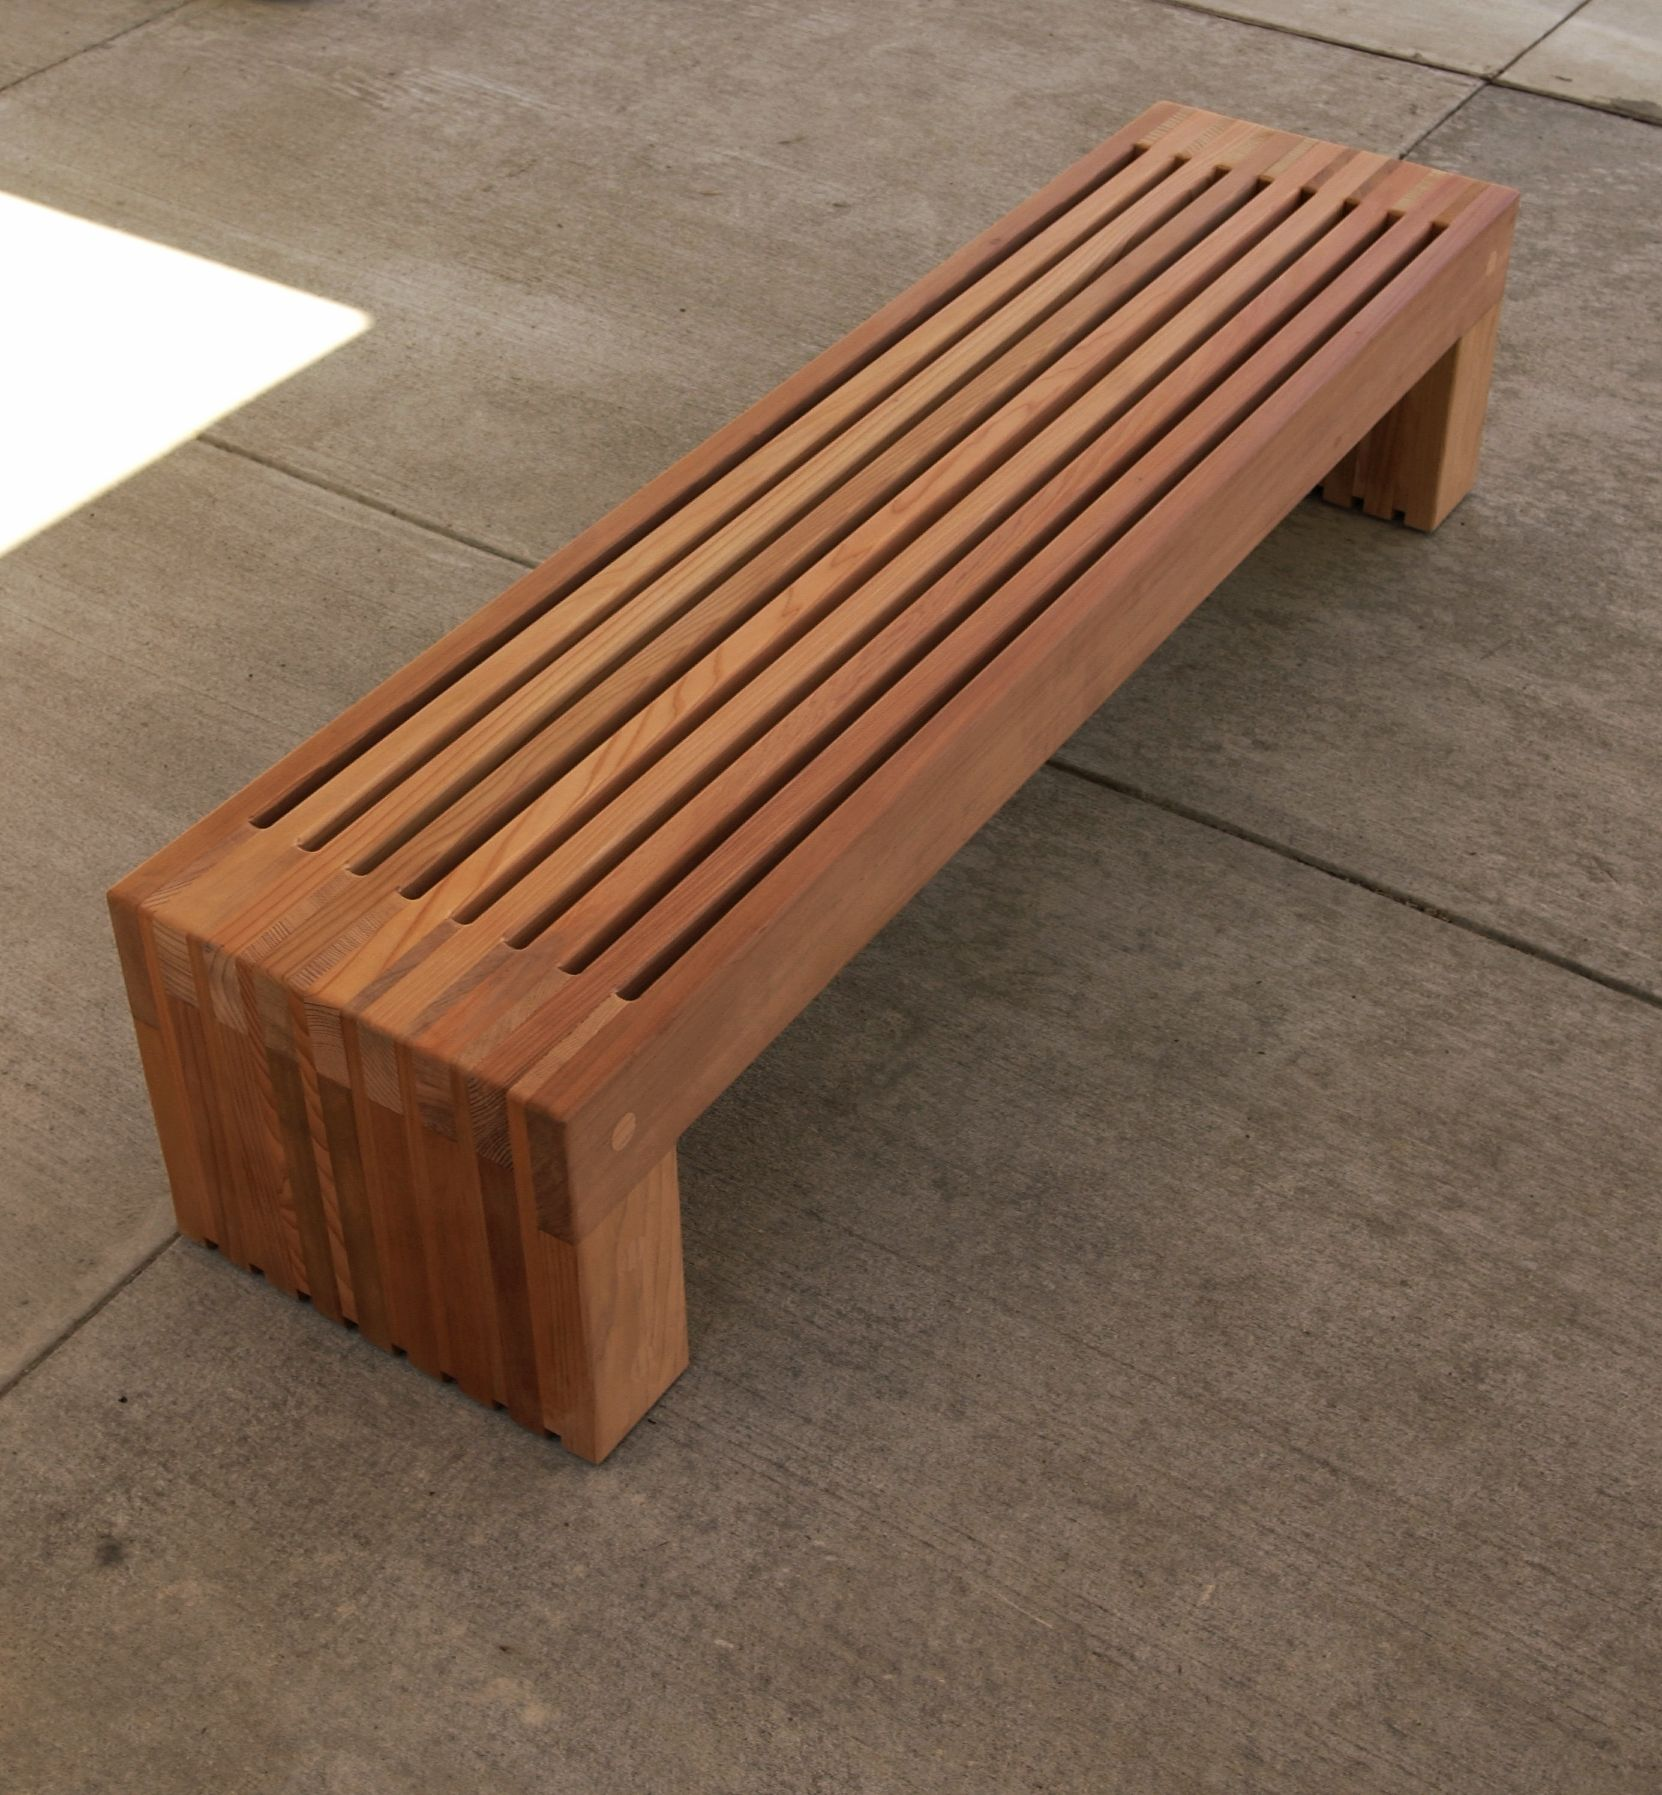 Diy Redwood Bench Design Pdf Download Ultimate Computer